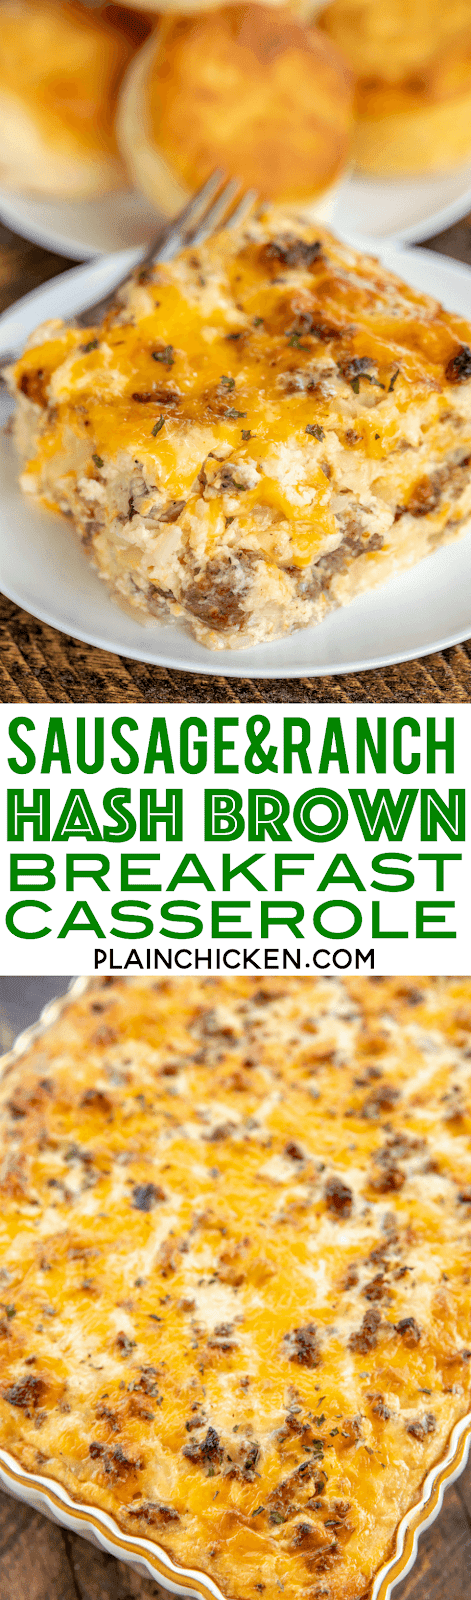 Sausage Hash Brown Breakfast Casserole - only 6 ingredients! Frozen hash browns, sausage, ranch dressing, eggs, milk & cheese - can be made ahead of time and refrigerated until ready! Everyone RAVES about this easy casserole. Great for overnight guests and Christmas morning! #casserole #breakfast #sausage #freezermeal